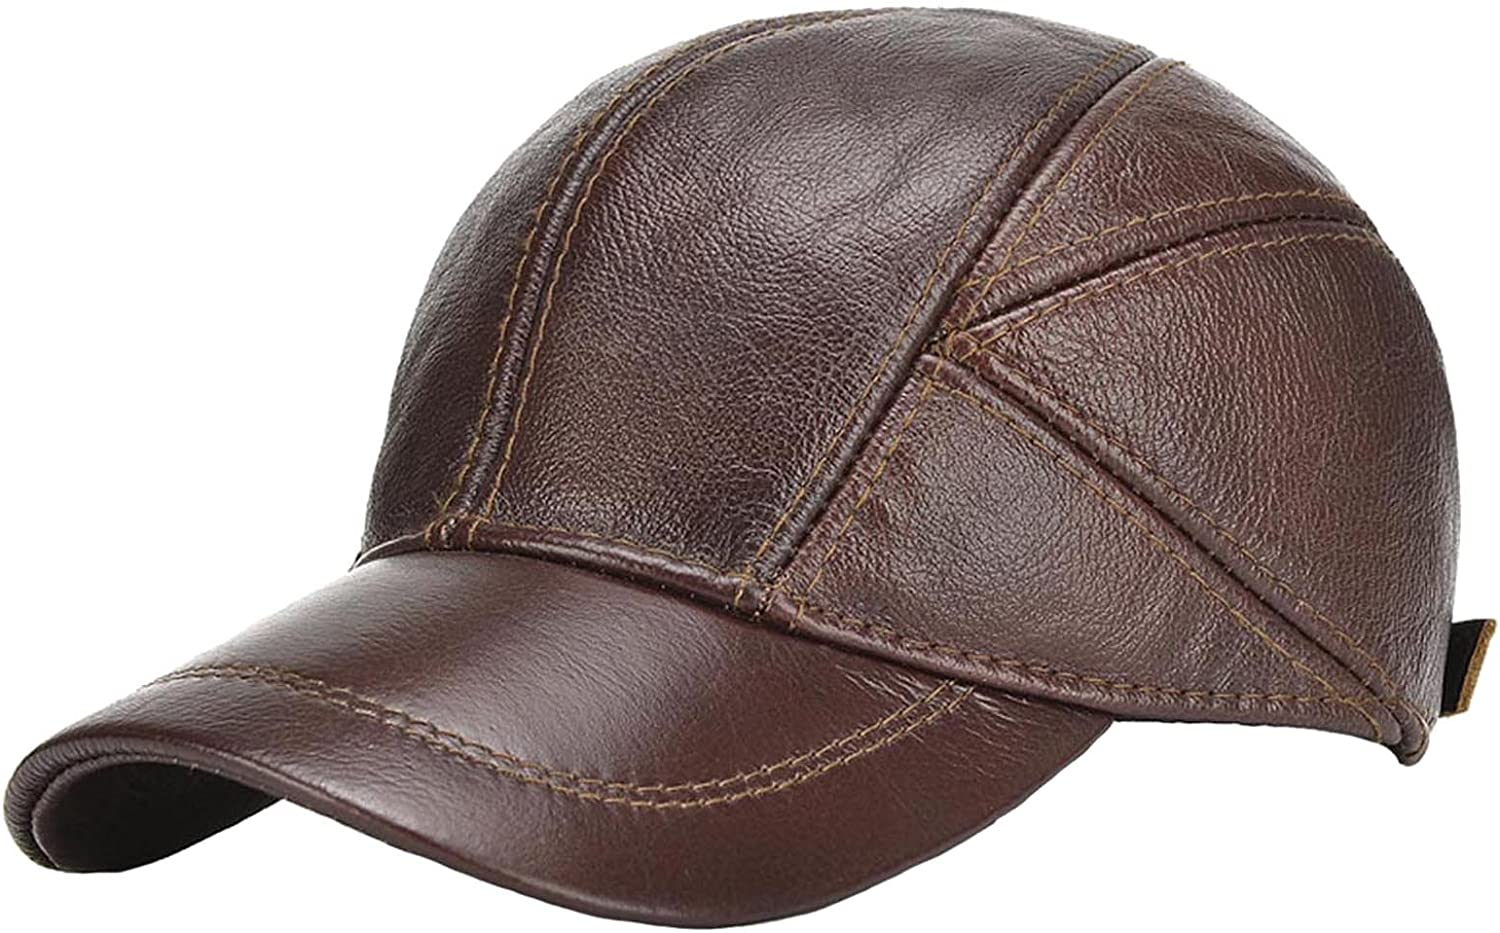 acdiac Men Cowhide hat Winter Warm Outdoor Protect Ear Real Leather Adjustable Baseball Cap